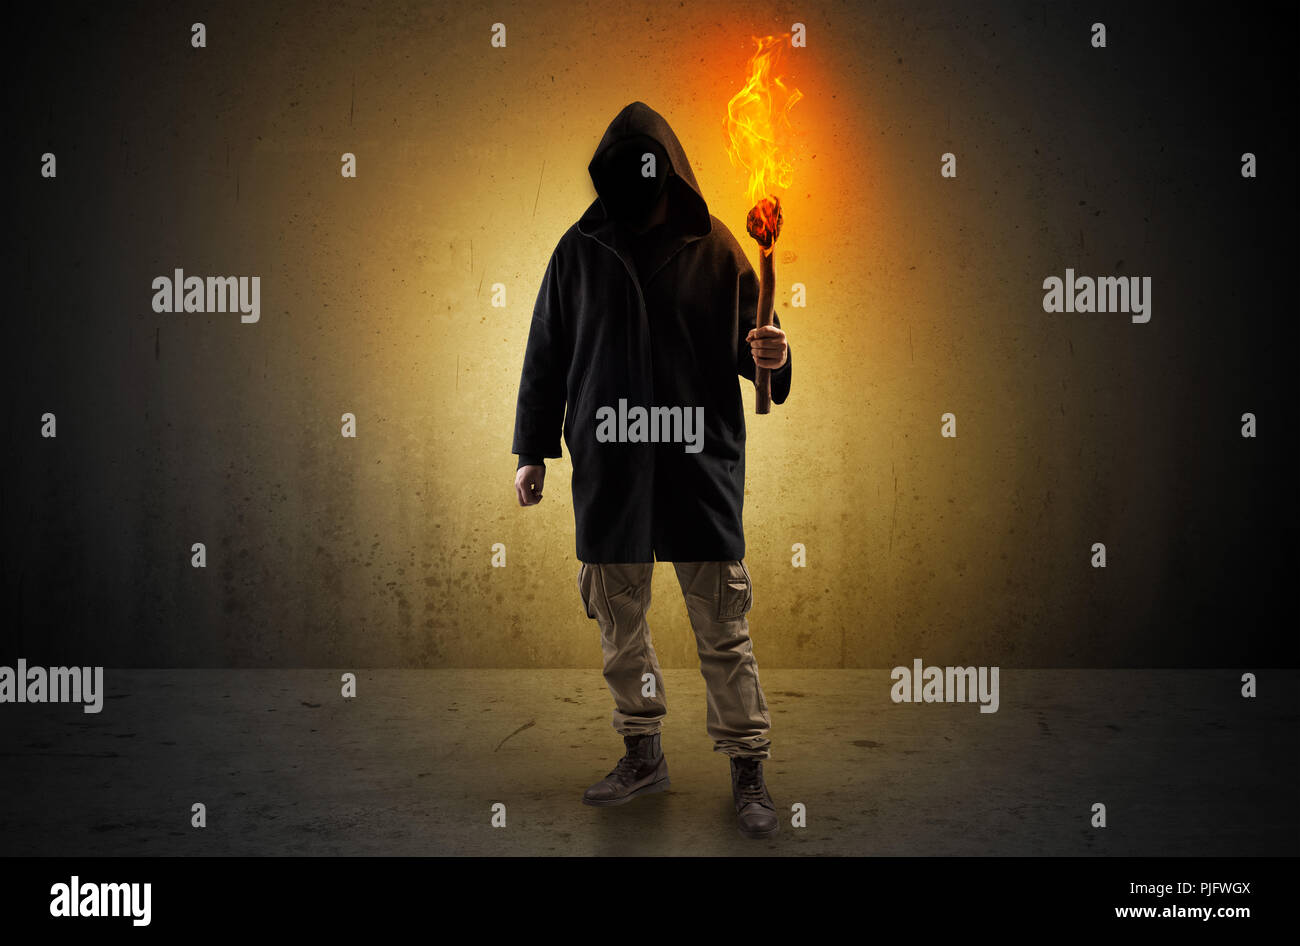 Ugly scary man with burning flambeau walking in an empty space - Stock Image